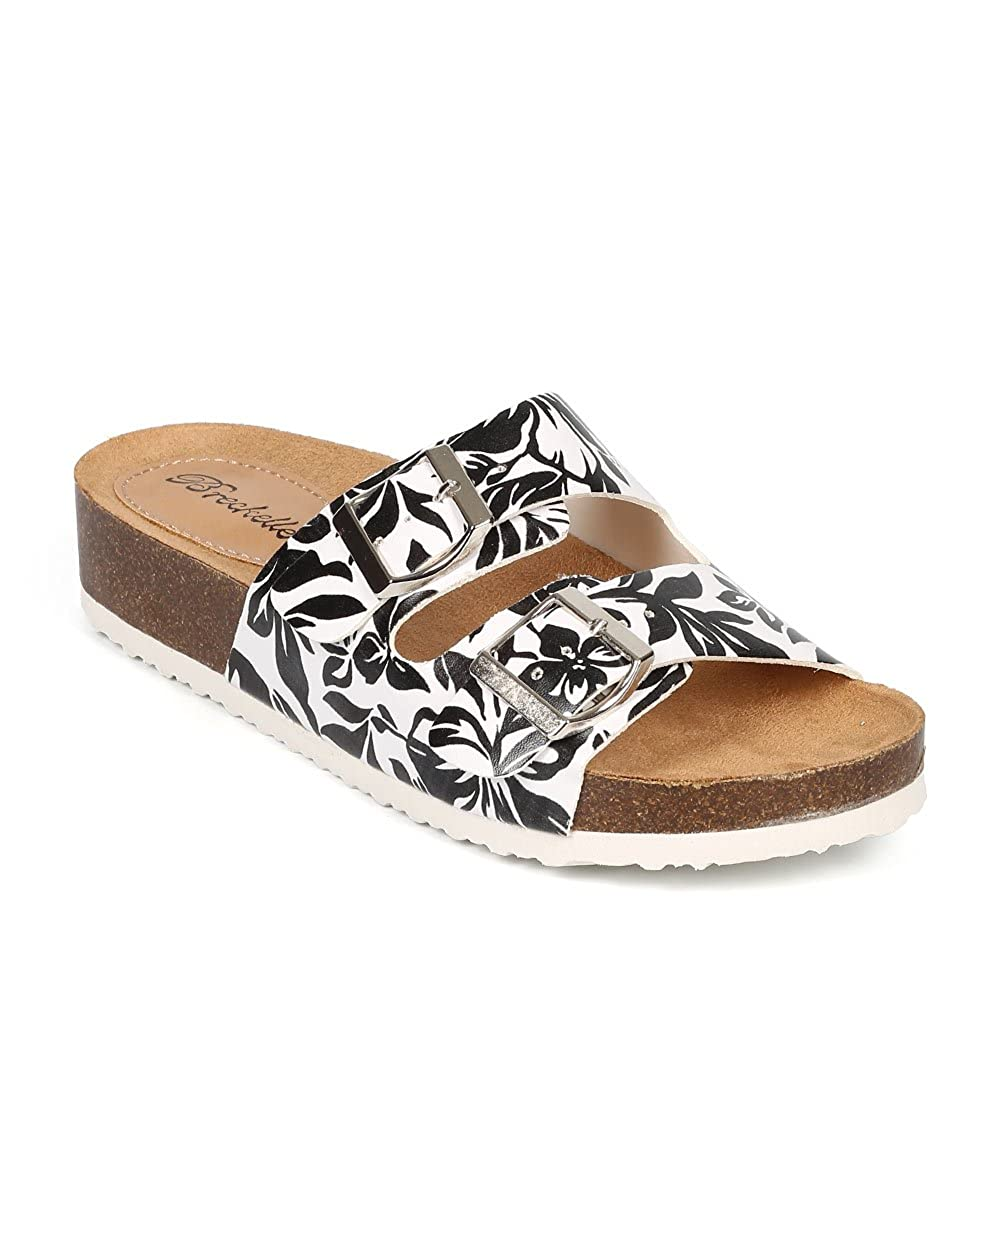 4255ca72f2d Women Tropical Open Toe Double Buckle Slip On Footbed Sandal CF07 - Black  Leatherette